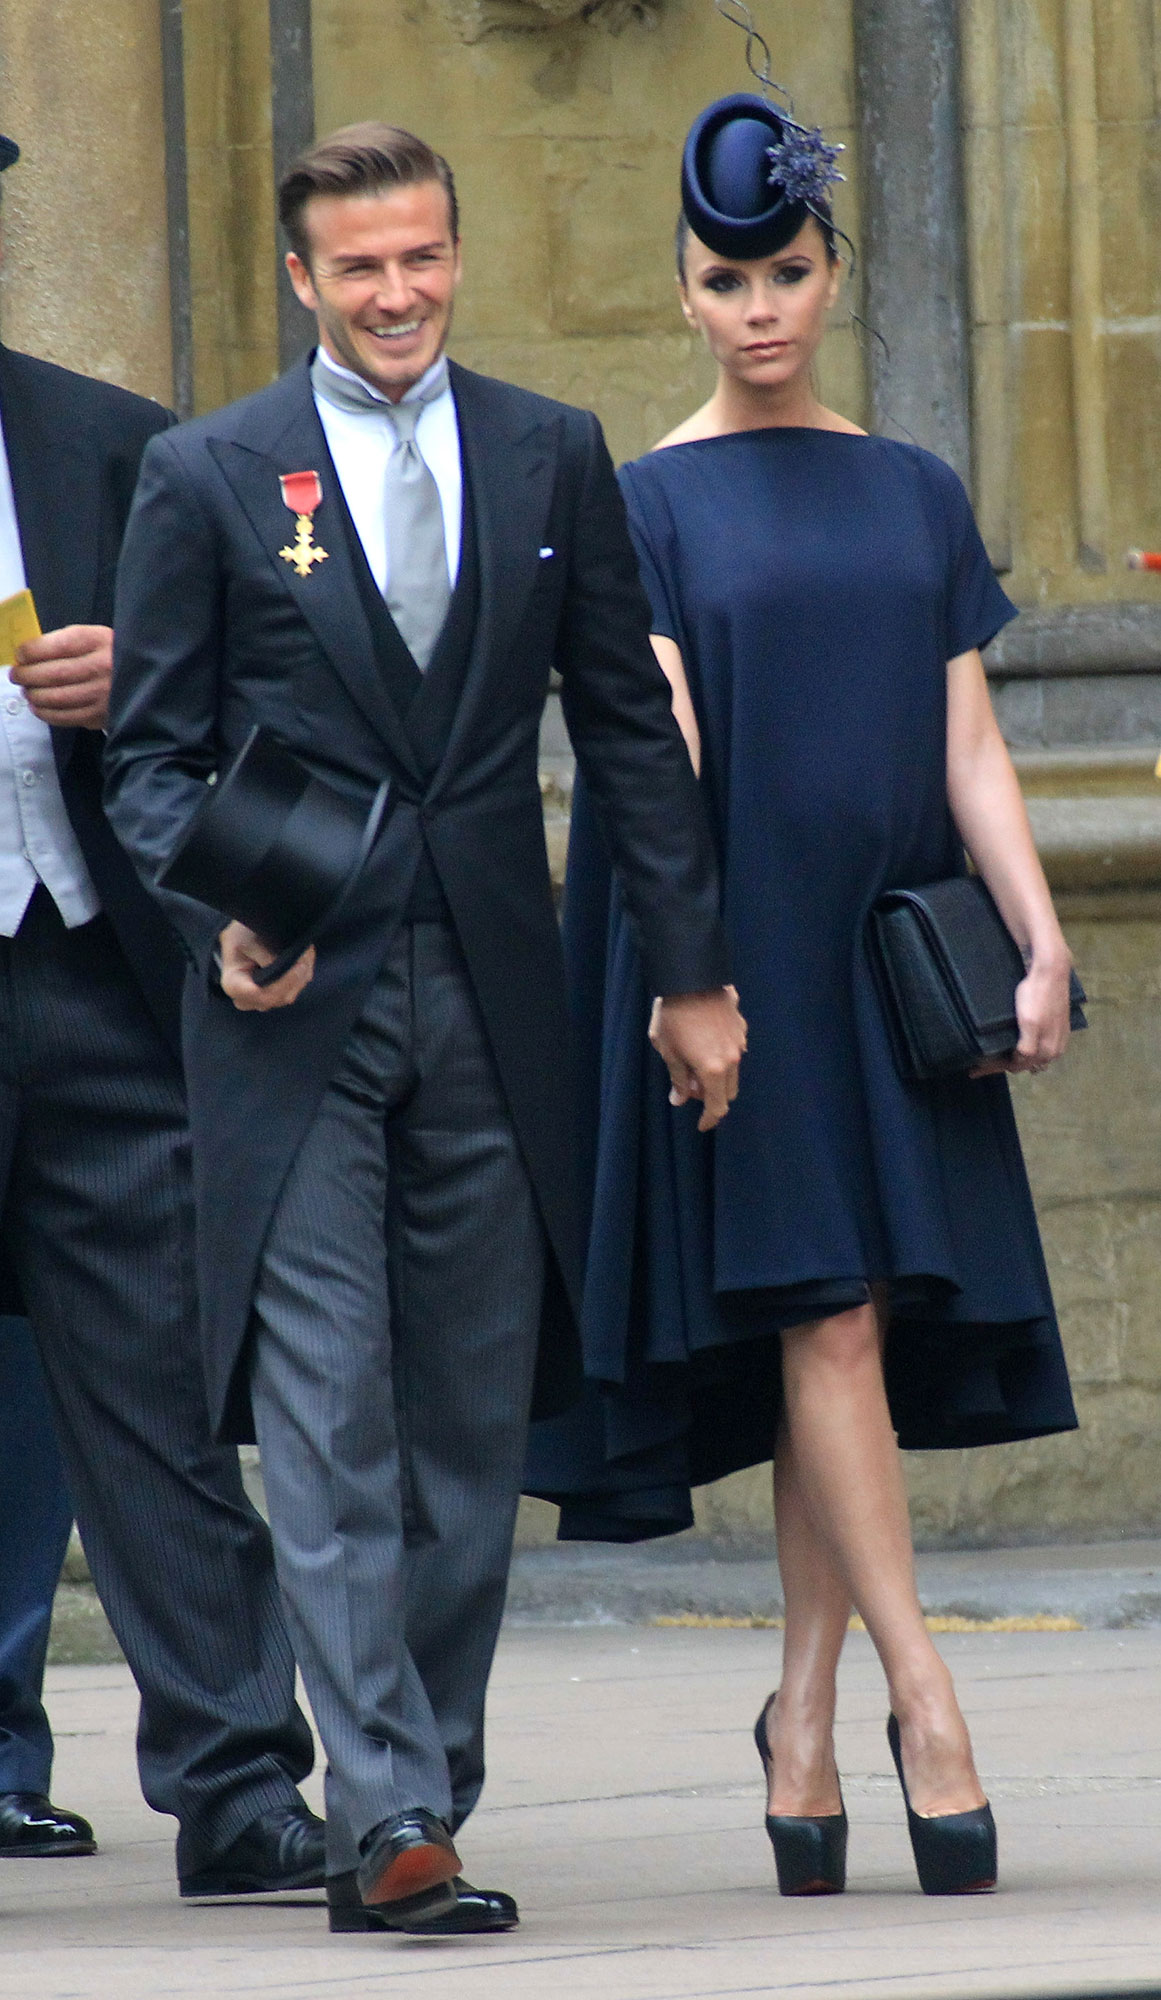 Victoria and David Beckham timeline gallery - A pregnant Victoria ventured across the pond with David in April 2011 for Prince William and Duchess Kate 's royal wedding . They were dressed impeccably for the occasion, with the businesswoman in a navy frock from her eponymous fashion line and a matching fascinator from Philip Treacy, and David opting for a dark Ralph Lauren suit.